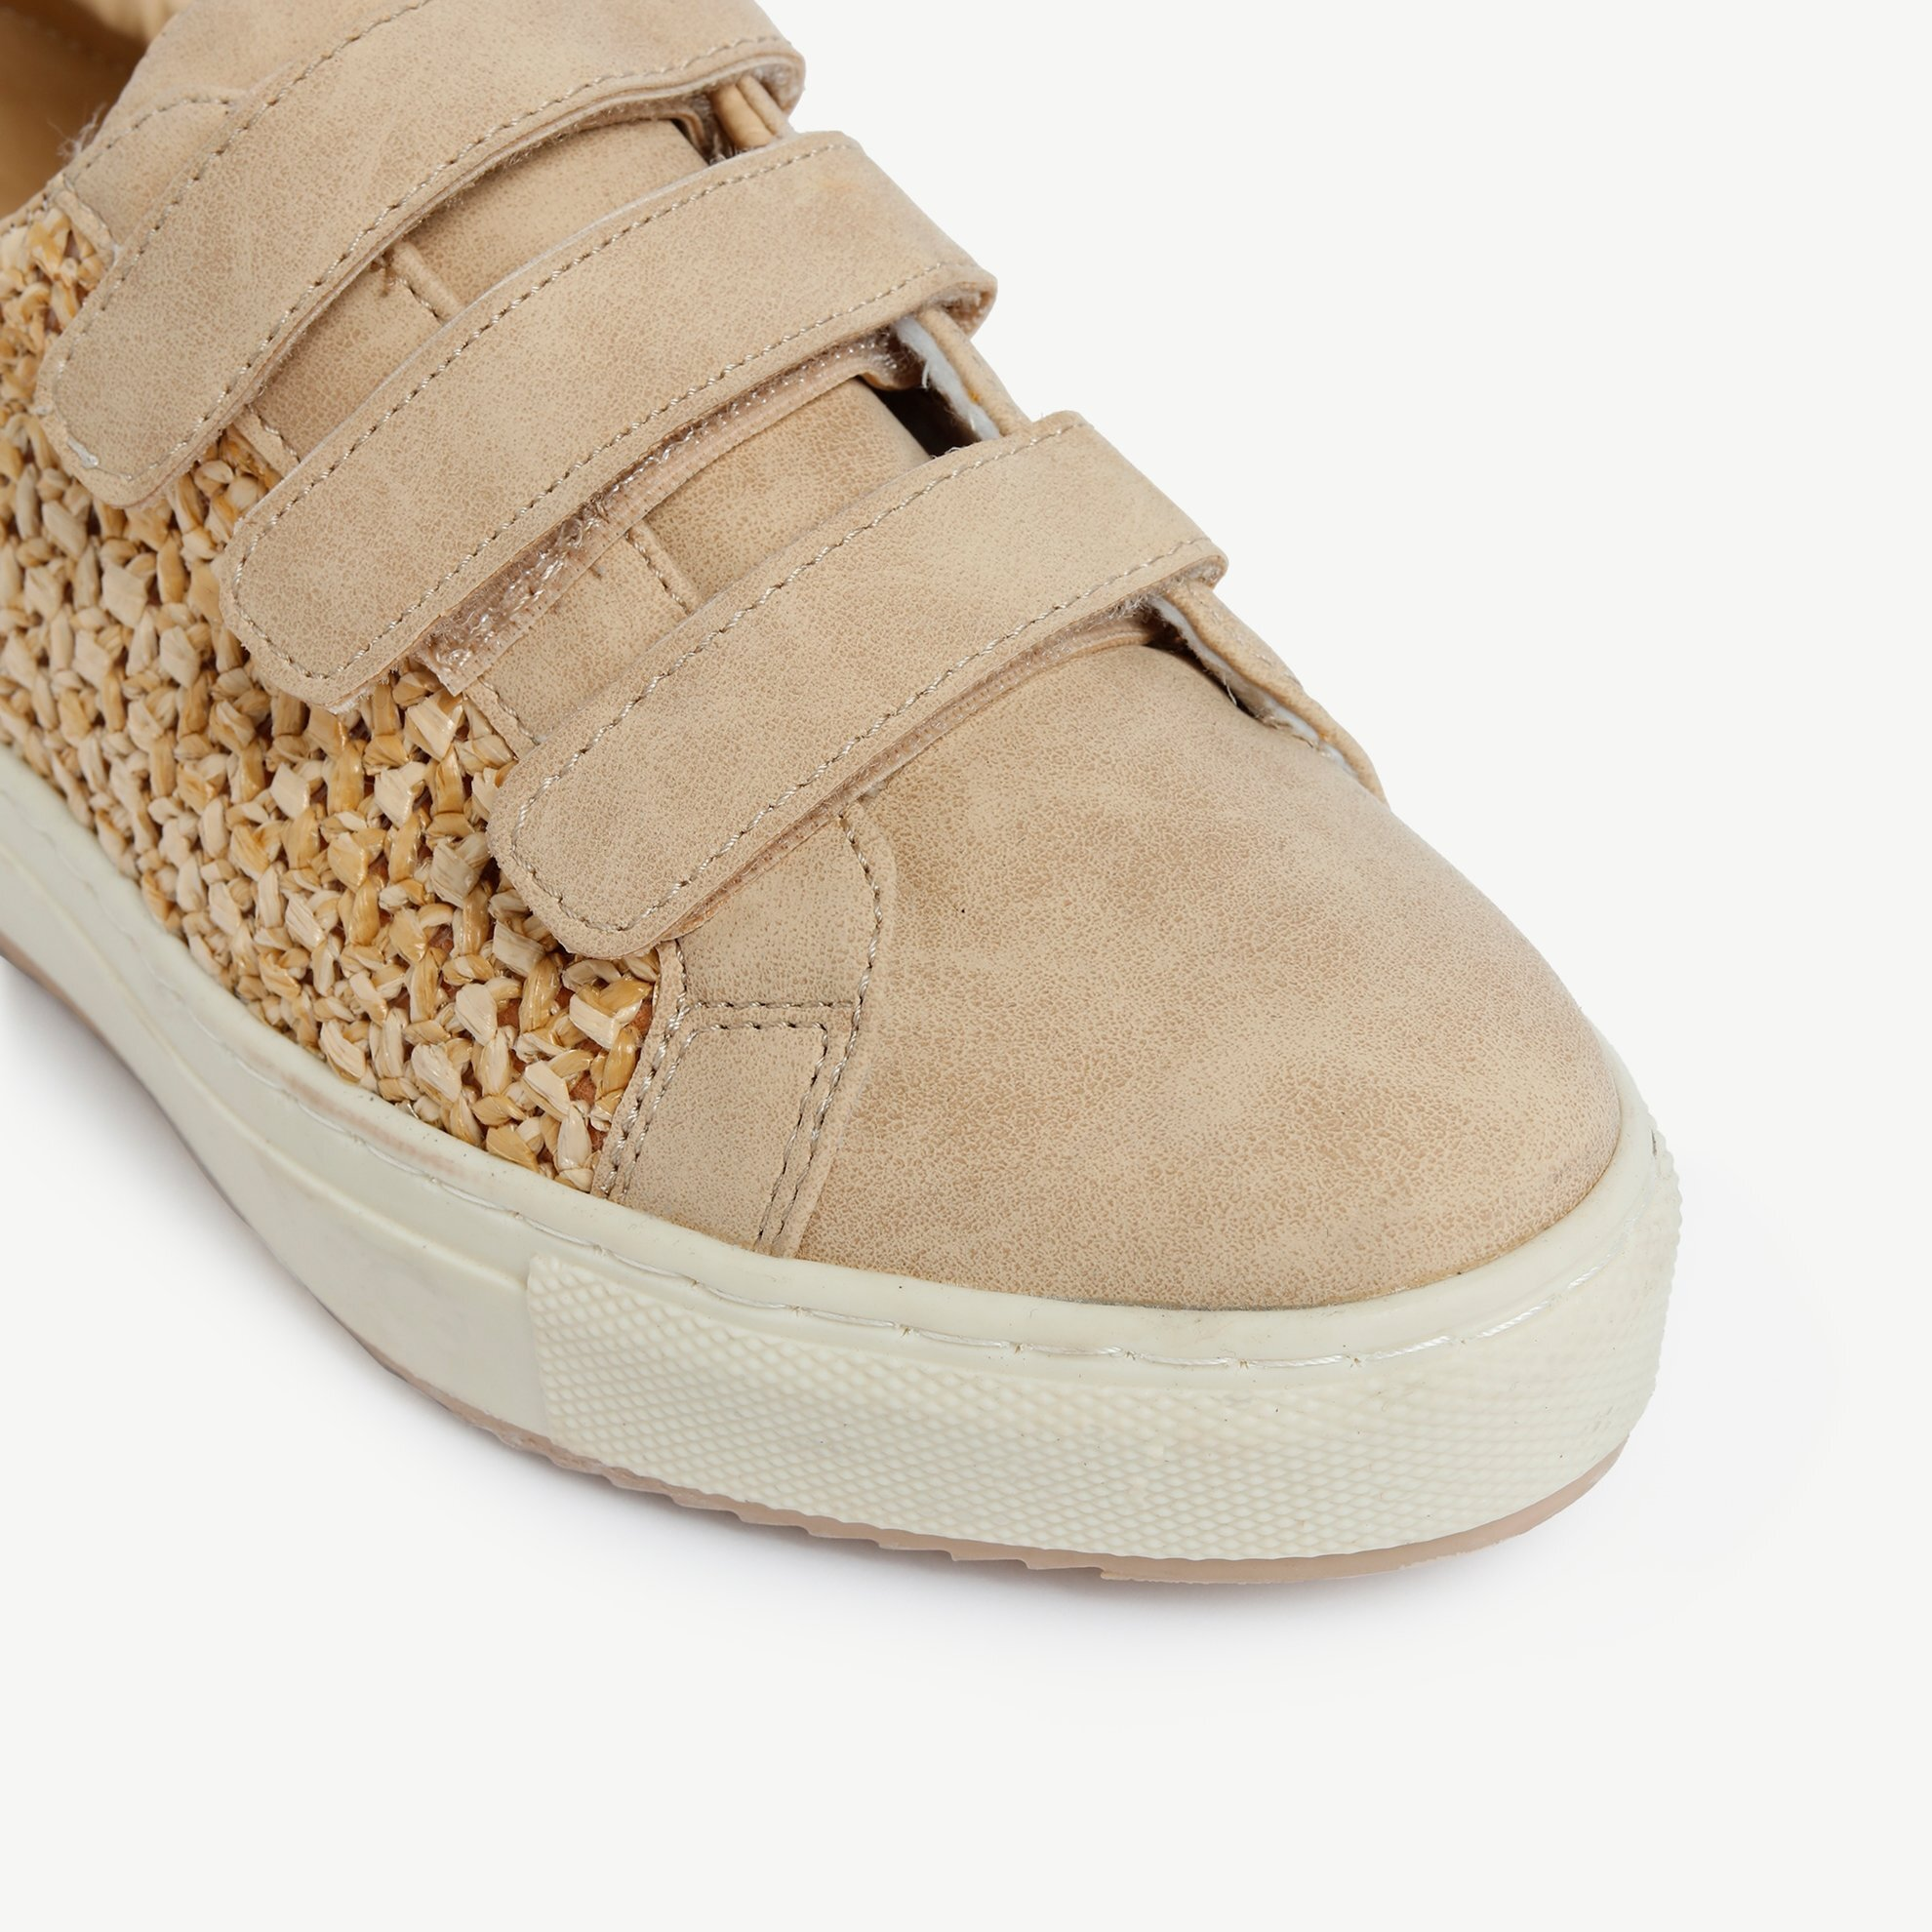 Sneaker With Straw Detail